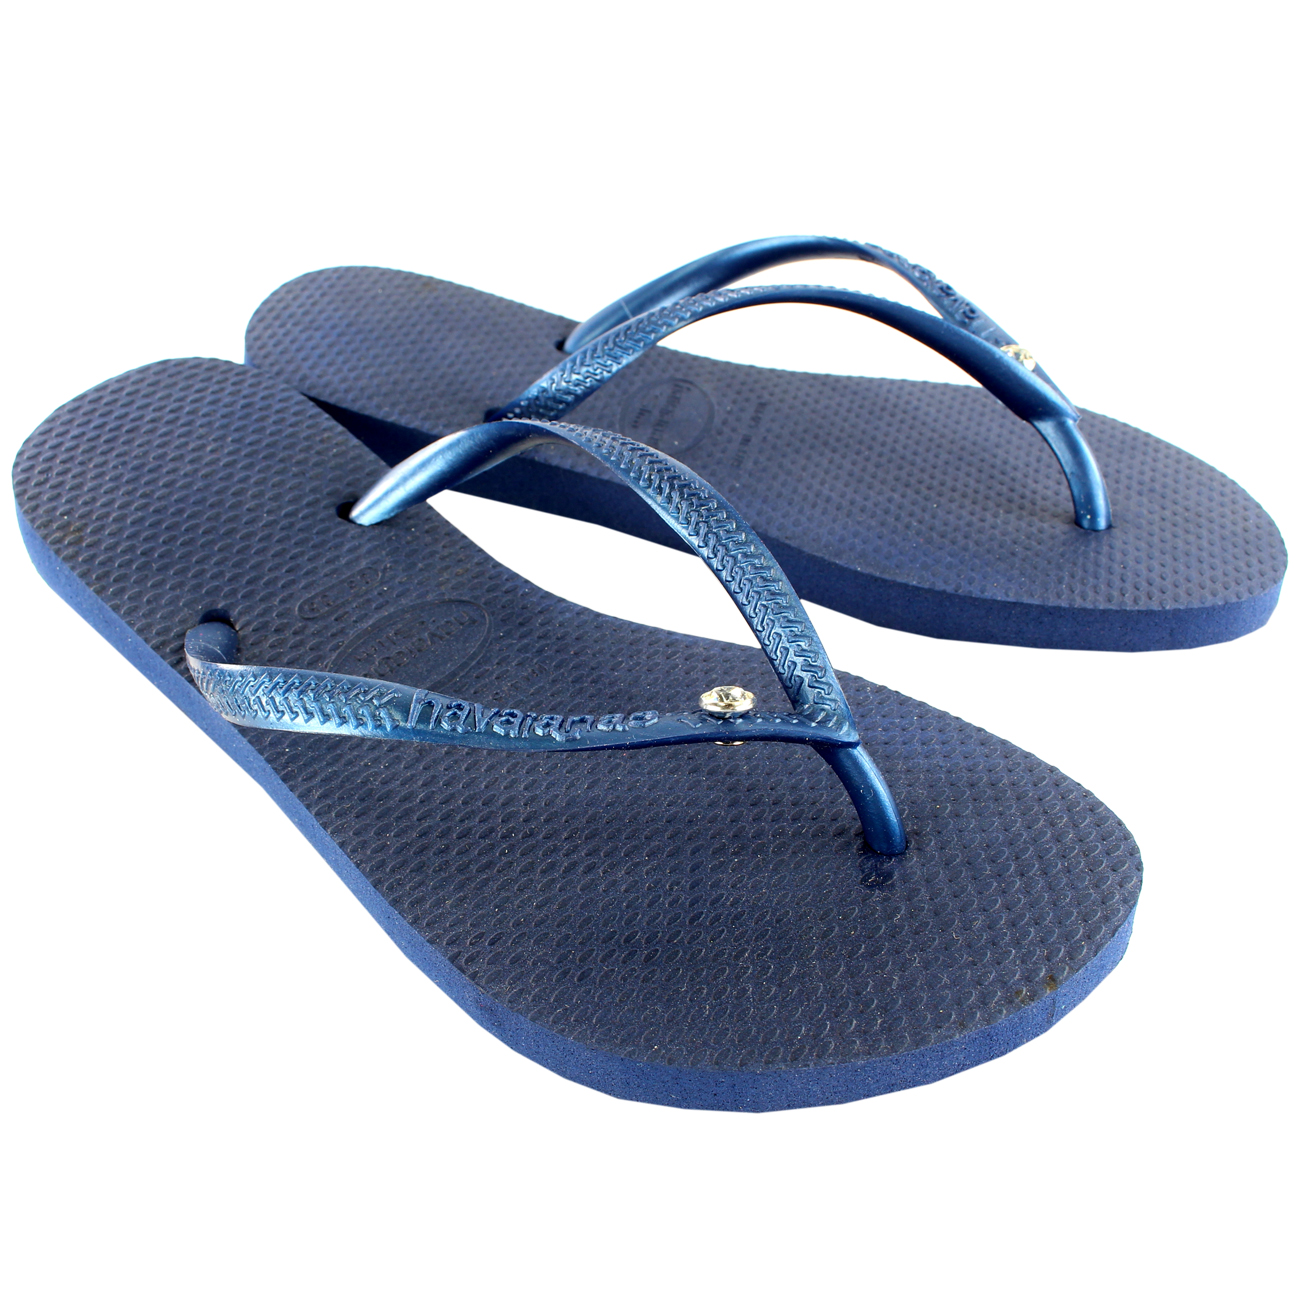 0fabf4951 Womens Havaianas Slim Crystal Glamour Sw Flip Flop Summer Sandal UK Sizes  1-8